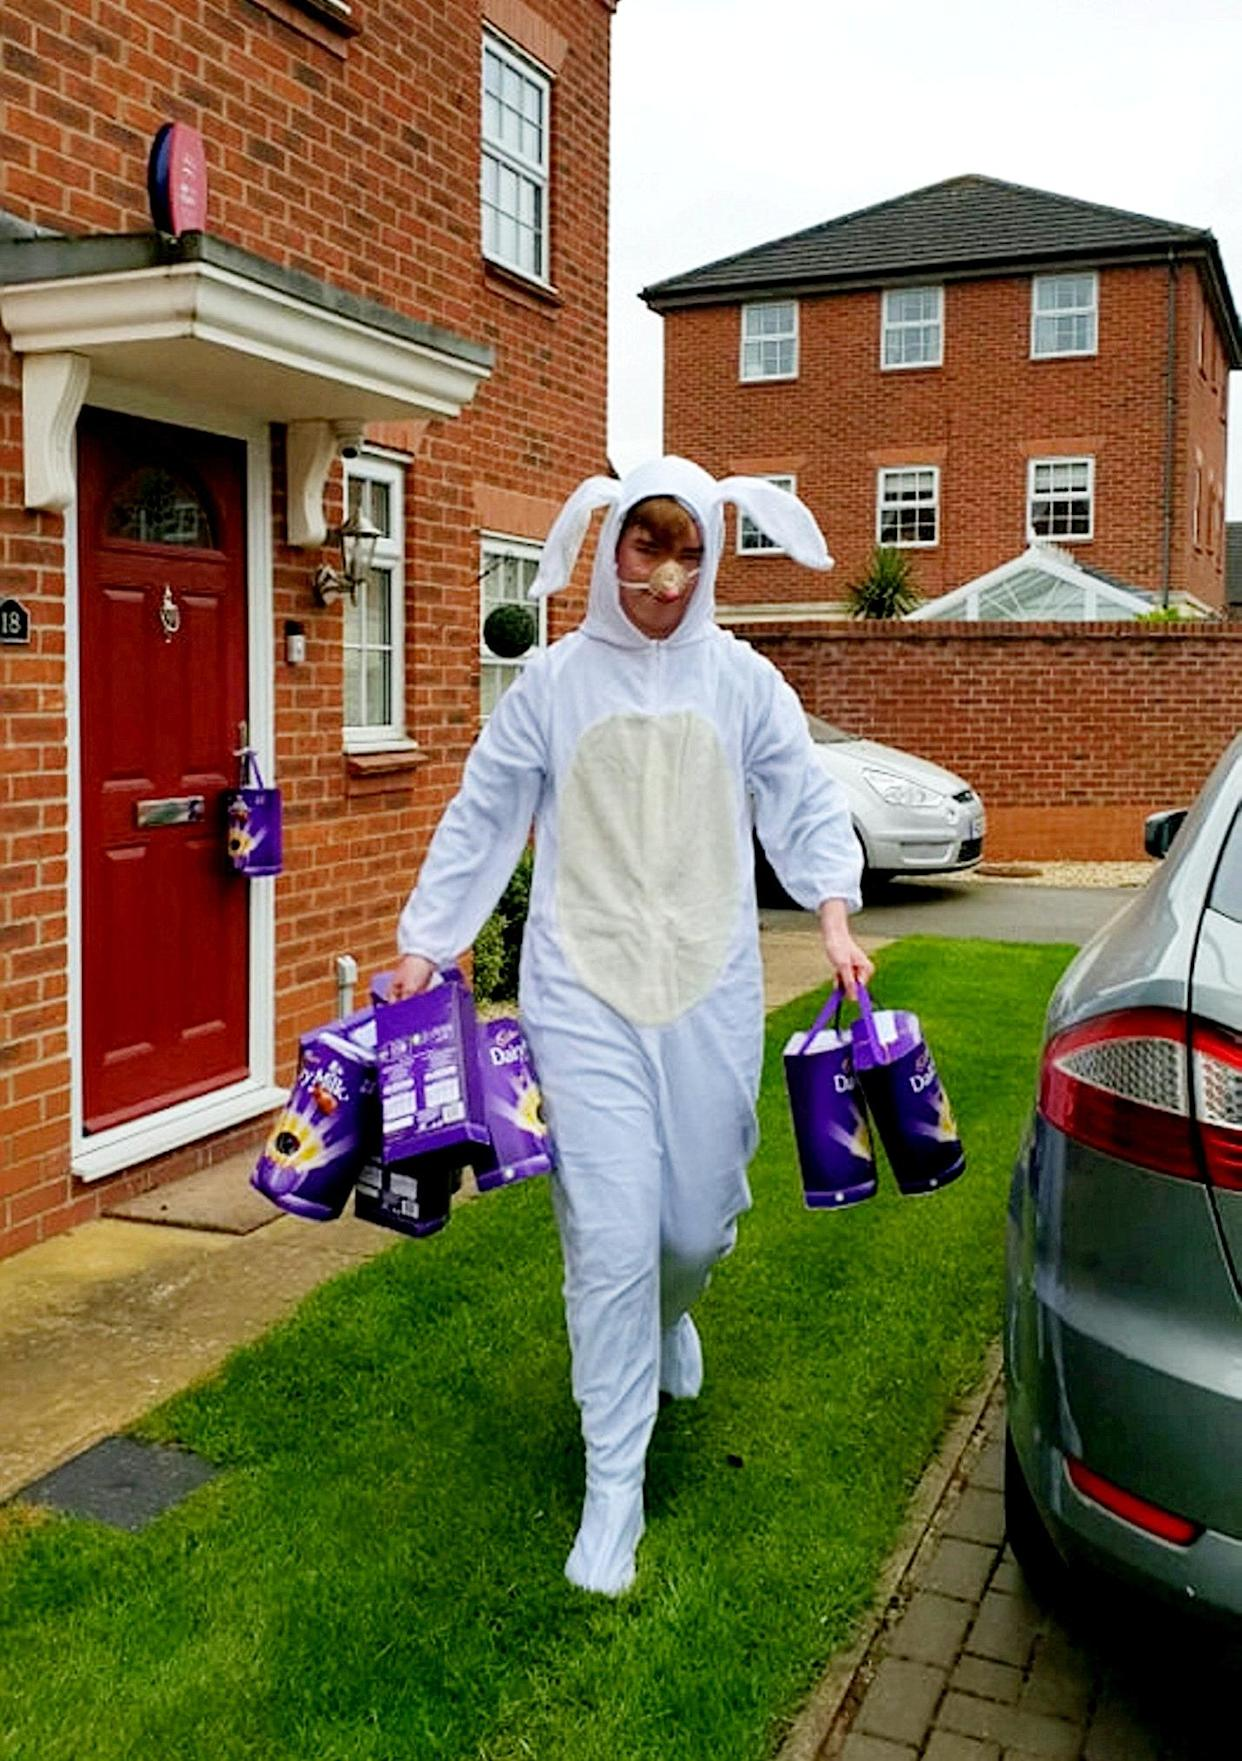 Sebbie Hall dressed as an Easter bunny to hand out 365 chocolate eggs which were donated to him for his challenge. (Supplied Ashley Hall/SWNS)